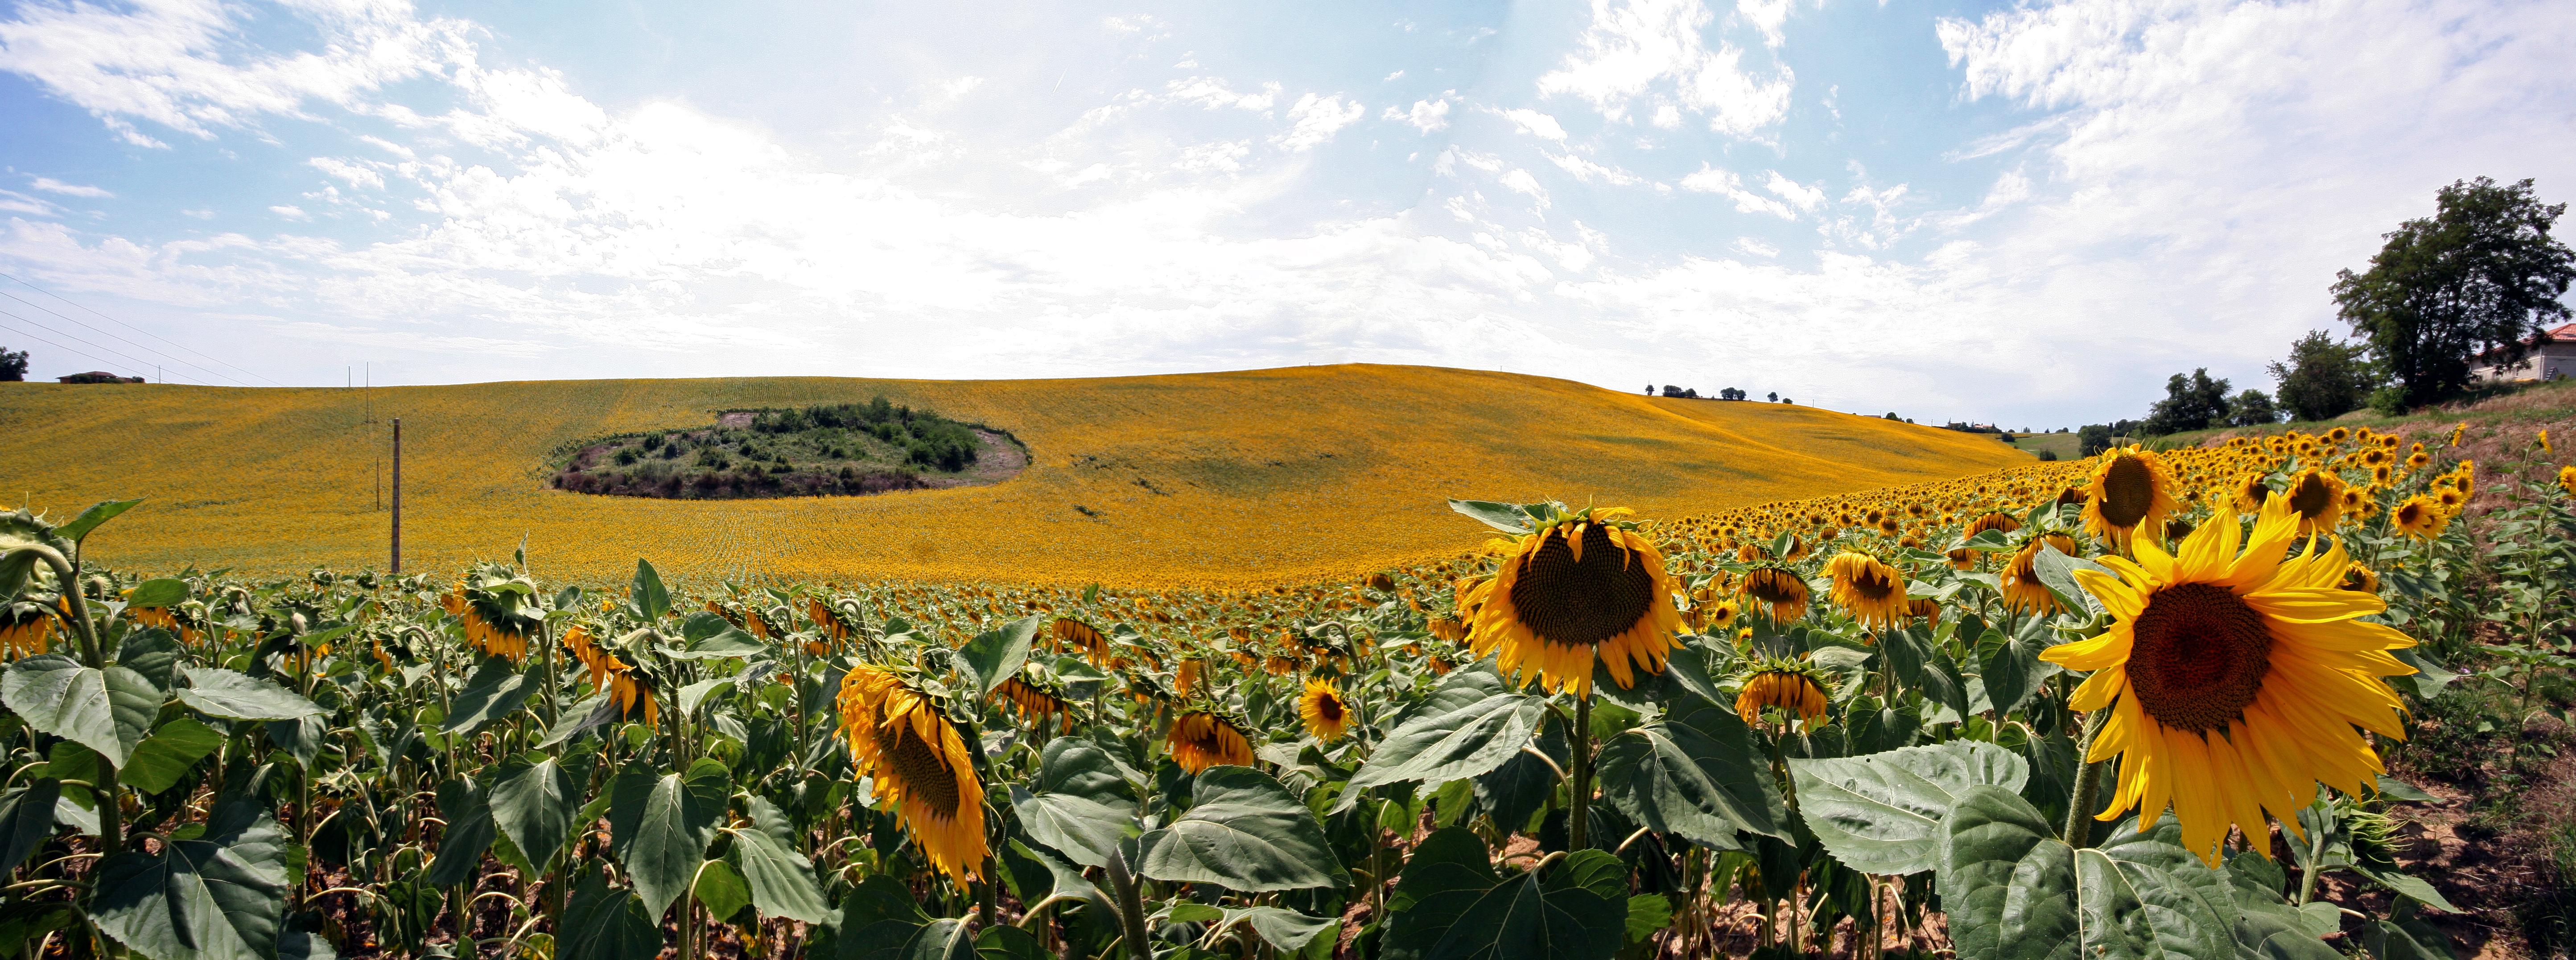 Sunflower field/Champ de tournesol